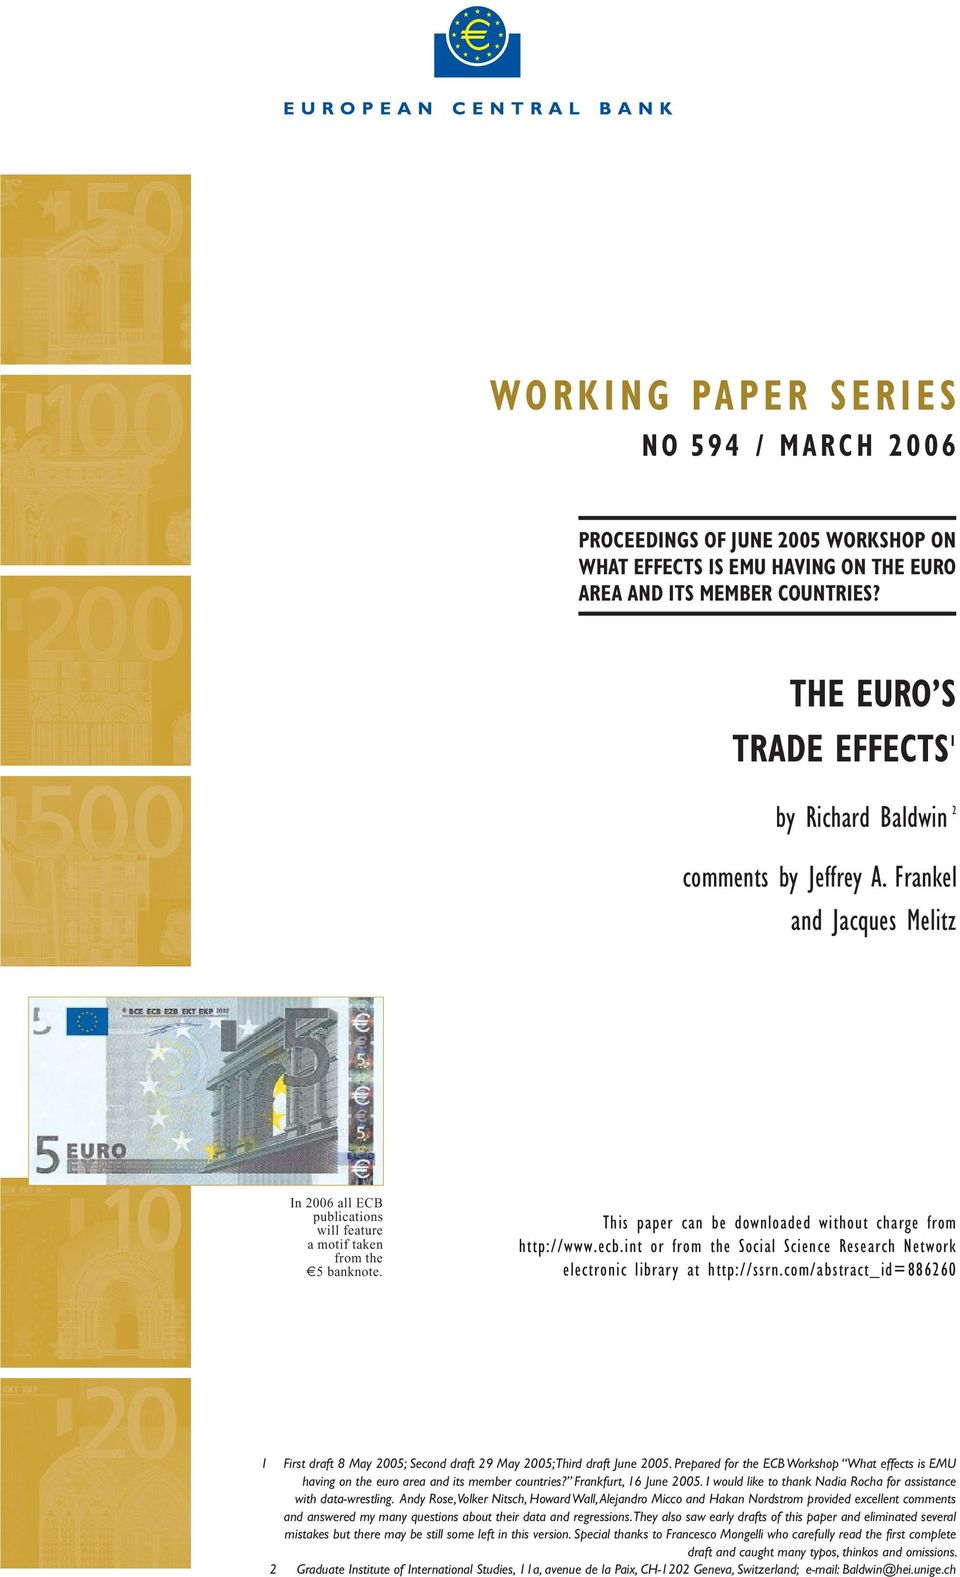 This paper can be downloaded without charge from http://www.ecb.int or from the Social Science Research Network electronic library at http://ssrn.